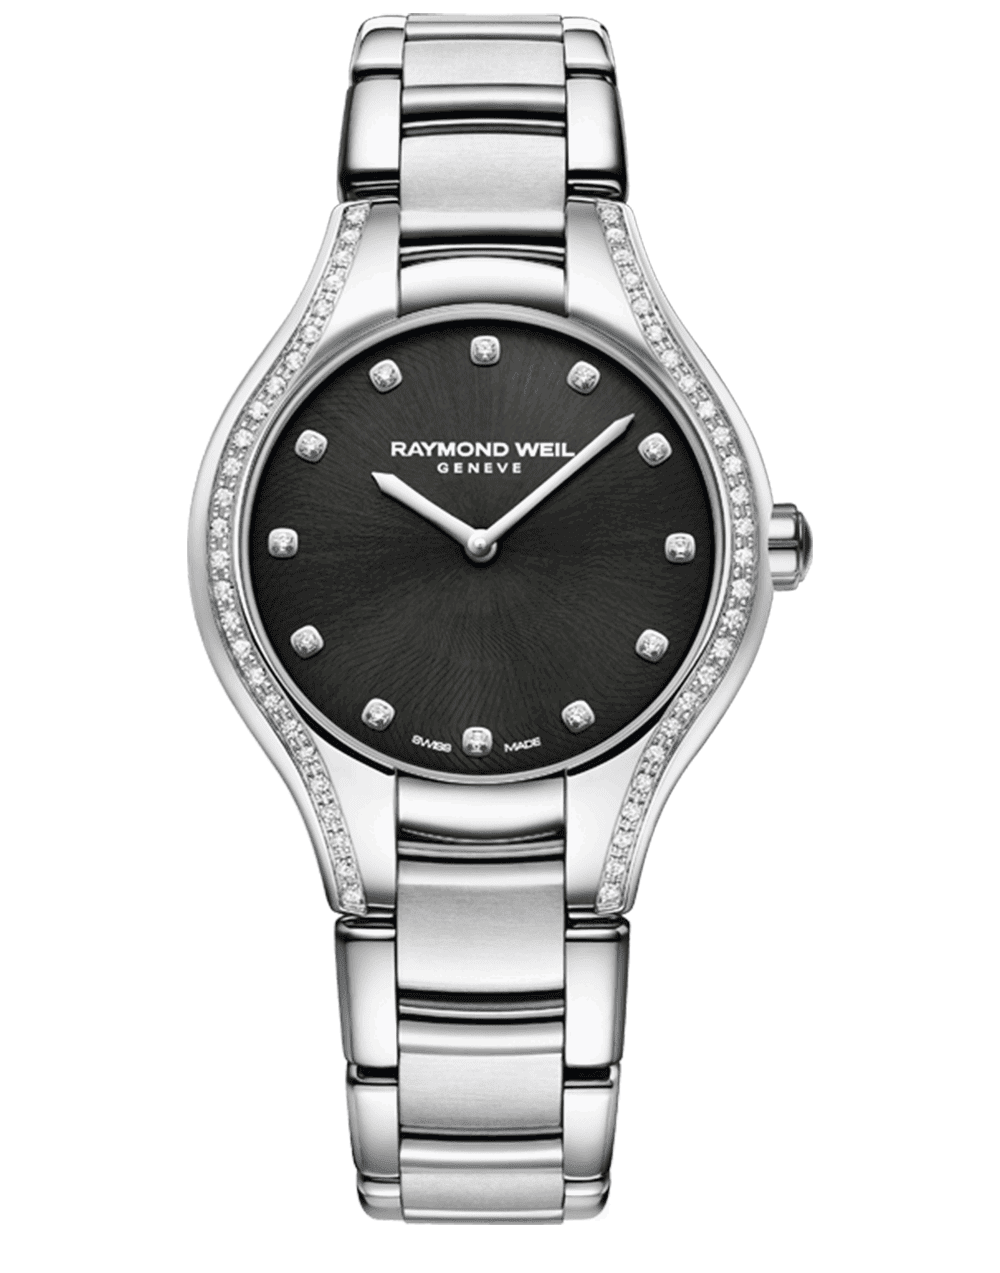 RAYMOND WEIL black dial 64 diamond ladies noemia watch